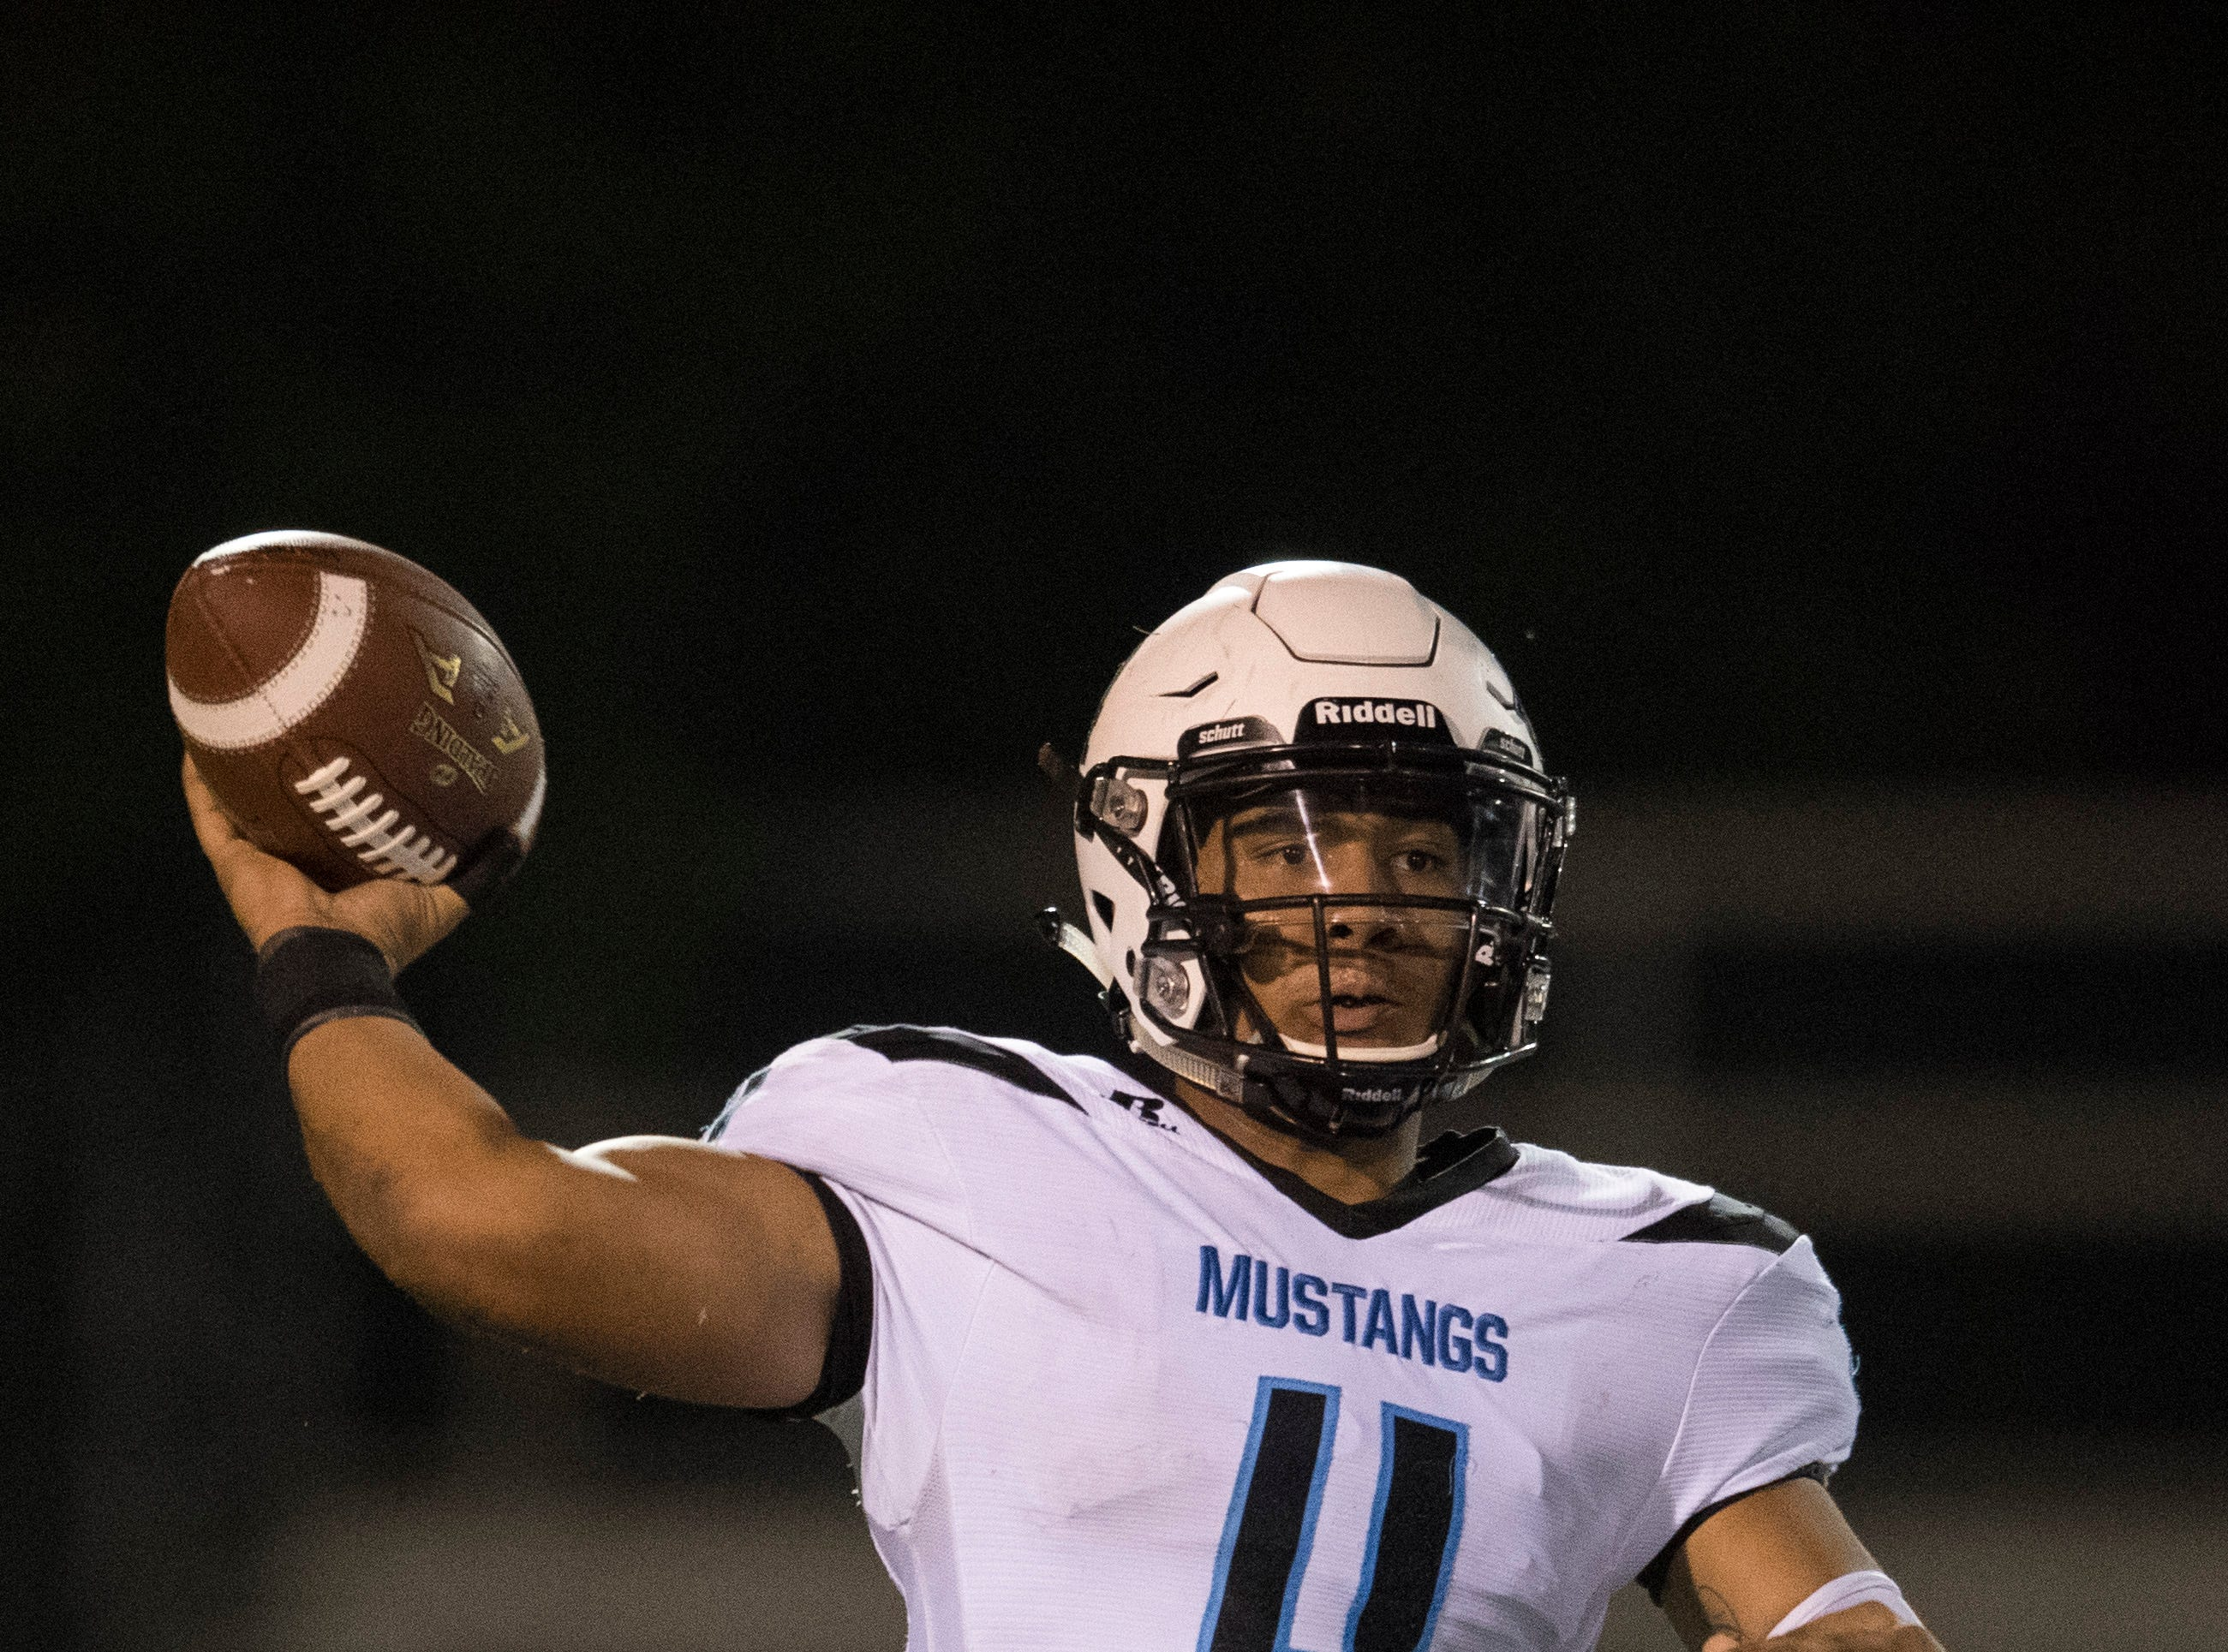 Muhlenberg County's Bronzyn Healy (4) passes the ball during the Henderson vs Muhlenberg County game at Colonel Stadium Friday, Sept. 28, 2018. The Henderson County Colonels won, 61-6.